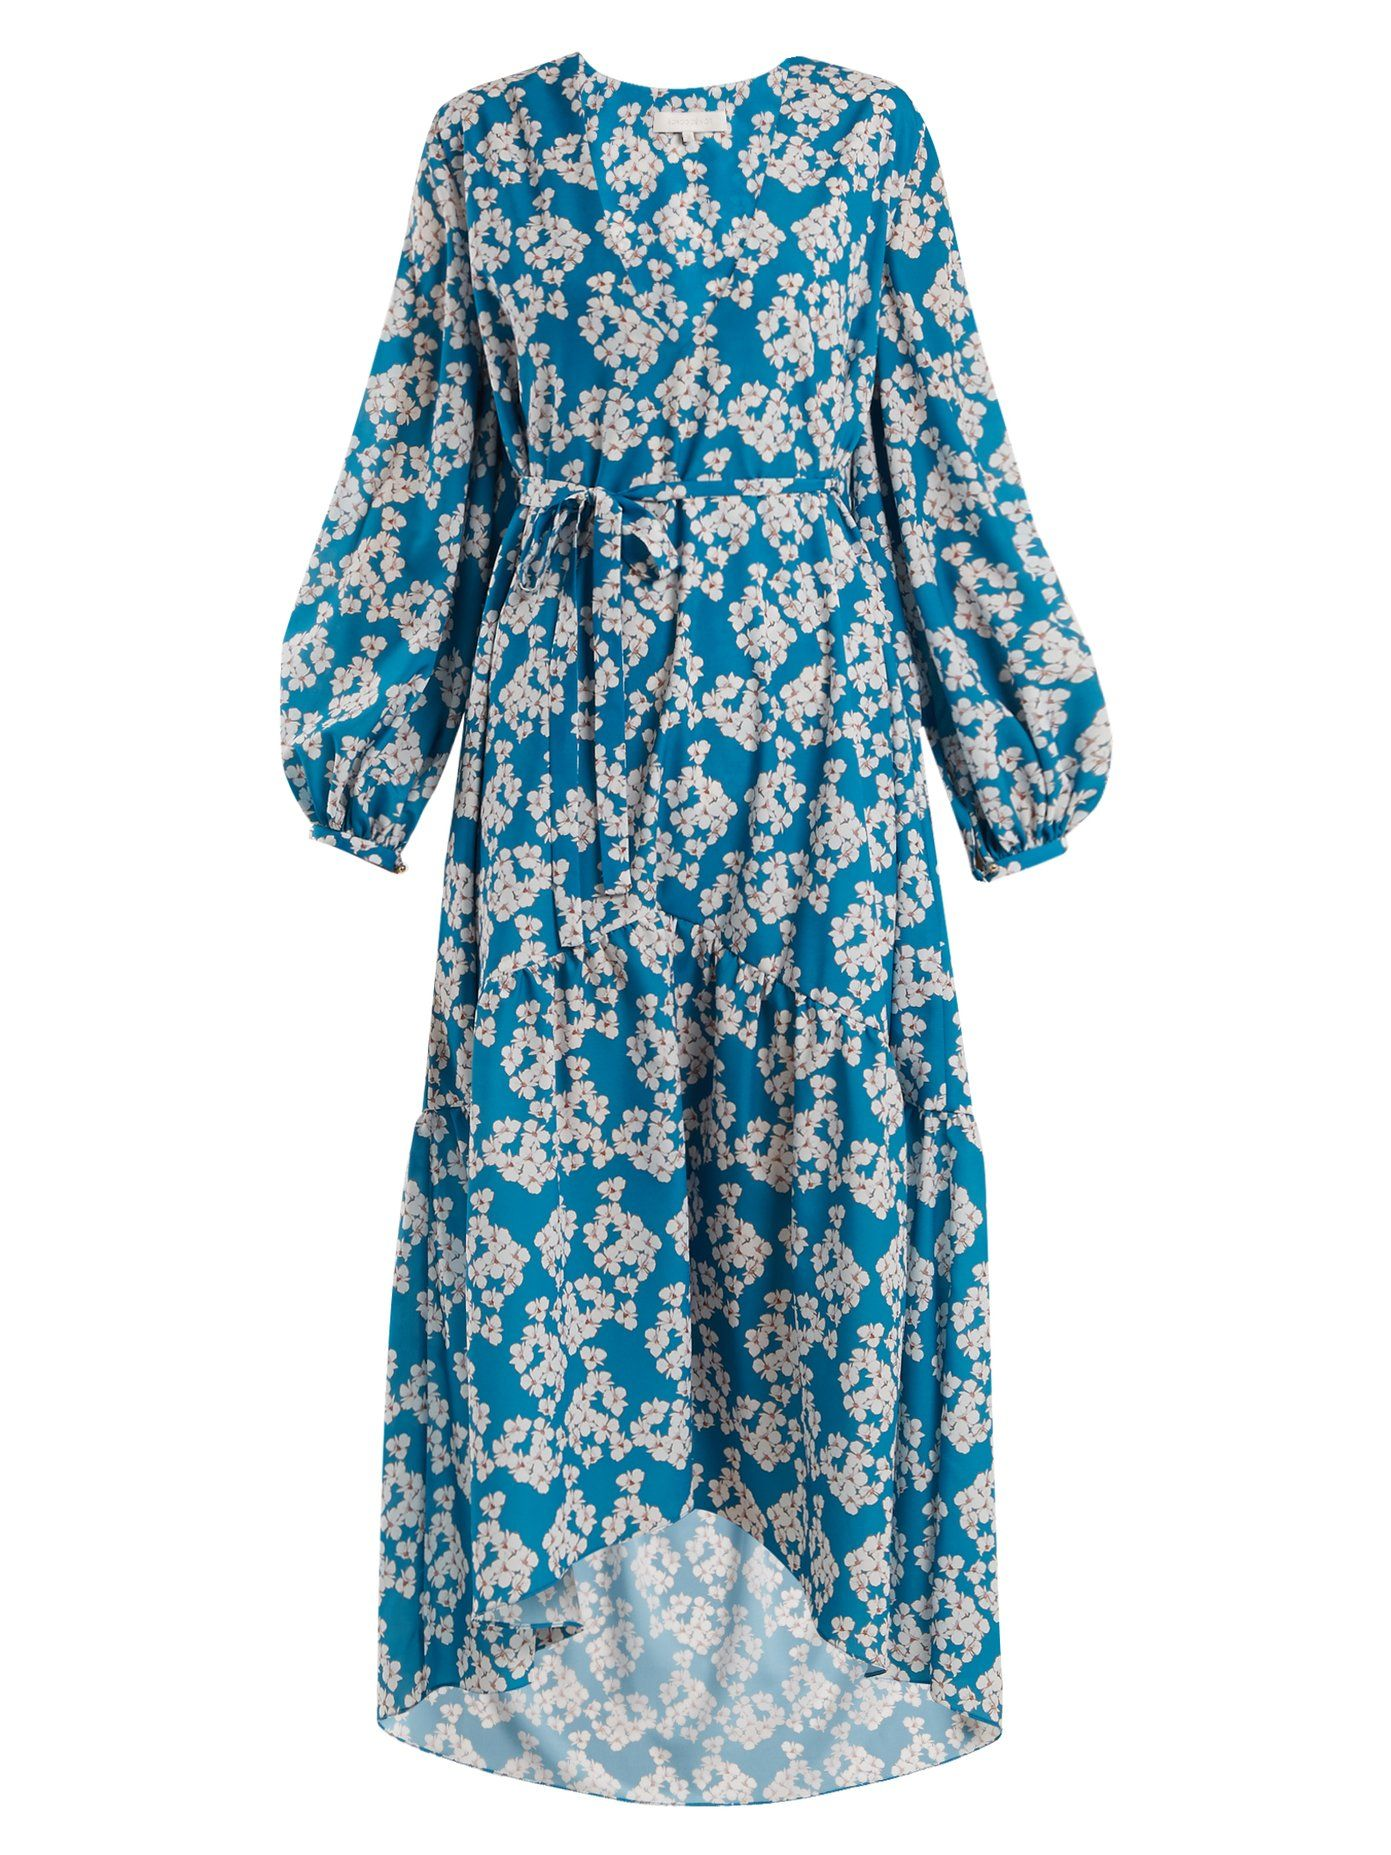 Beatrice Bouquet-print crepe dress Borgo De Nor rN43DQ